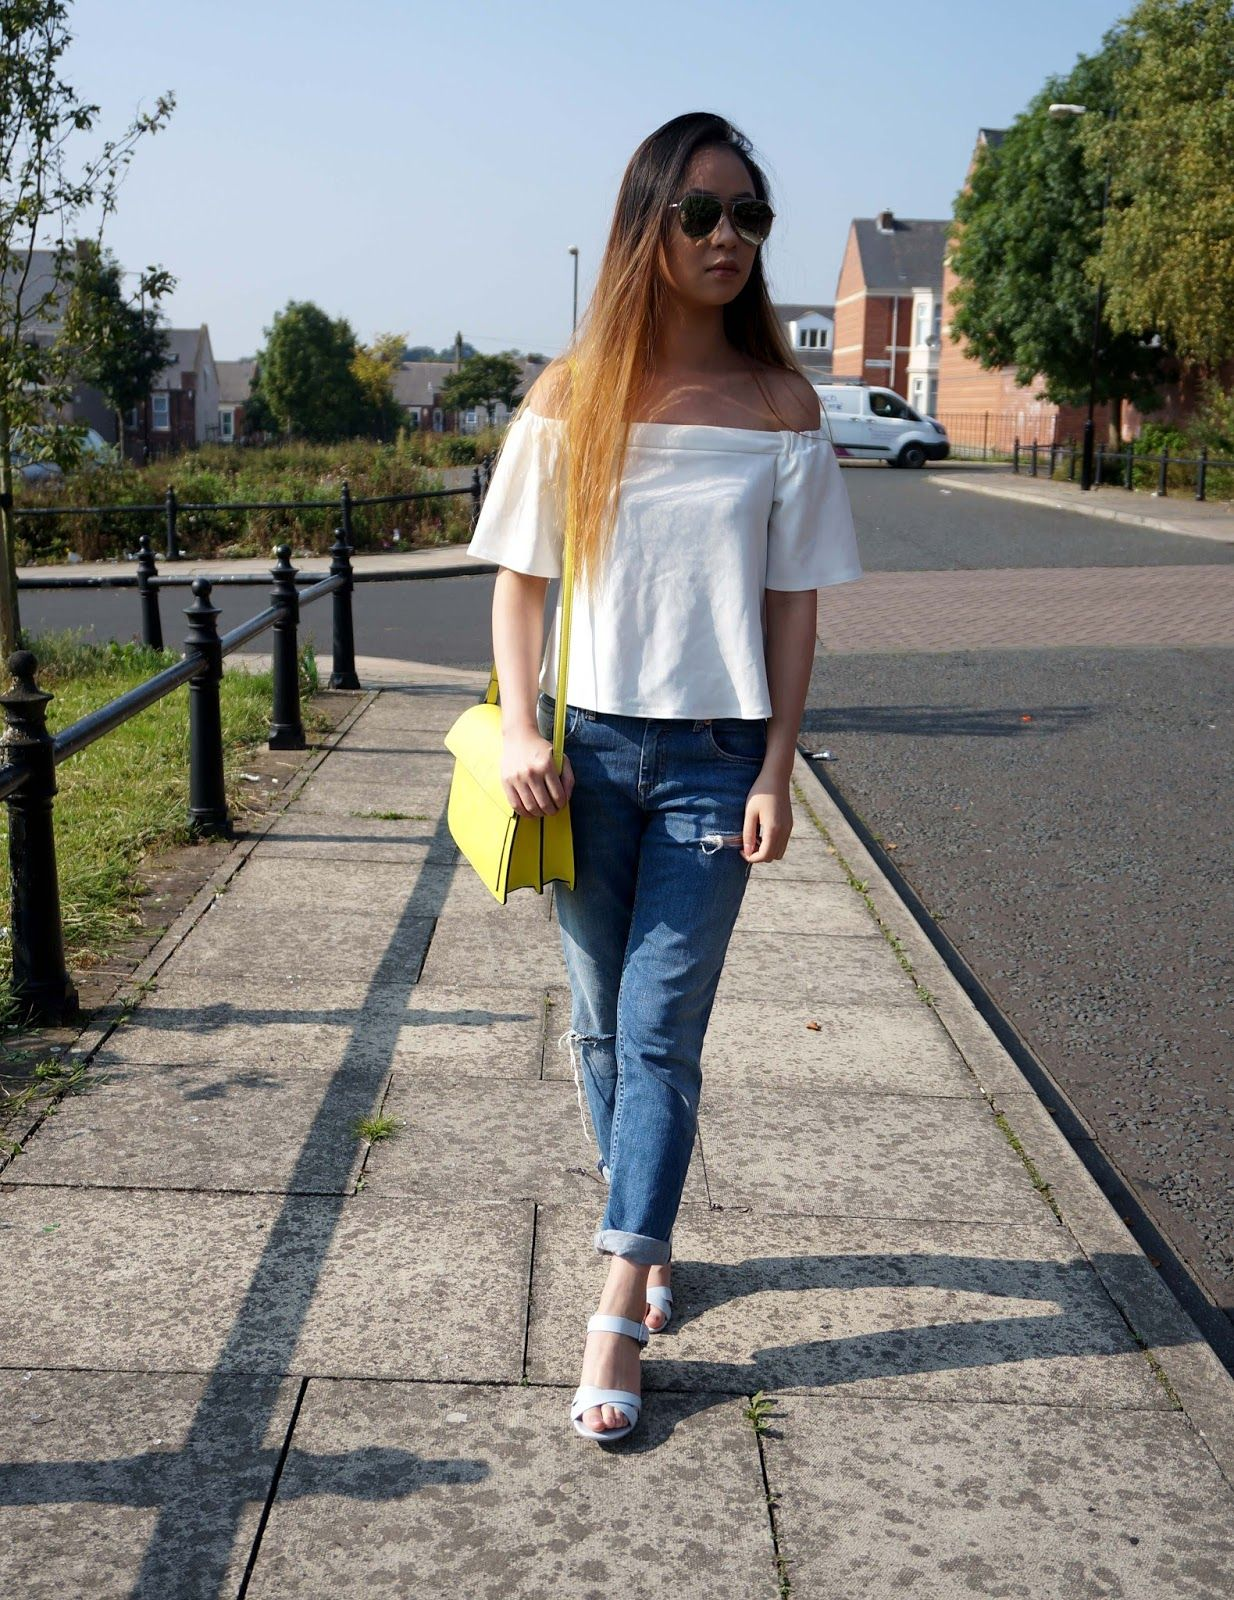 d571737da94 new look white off shoulder top, asos ripped blue jeans, river island  sandals, zara yellow bag